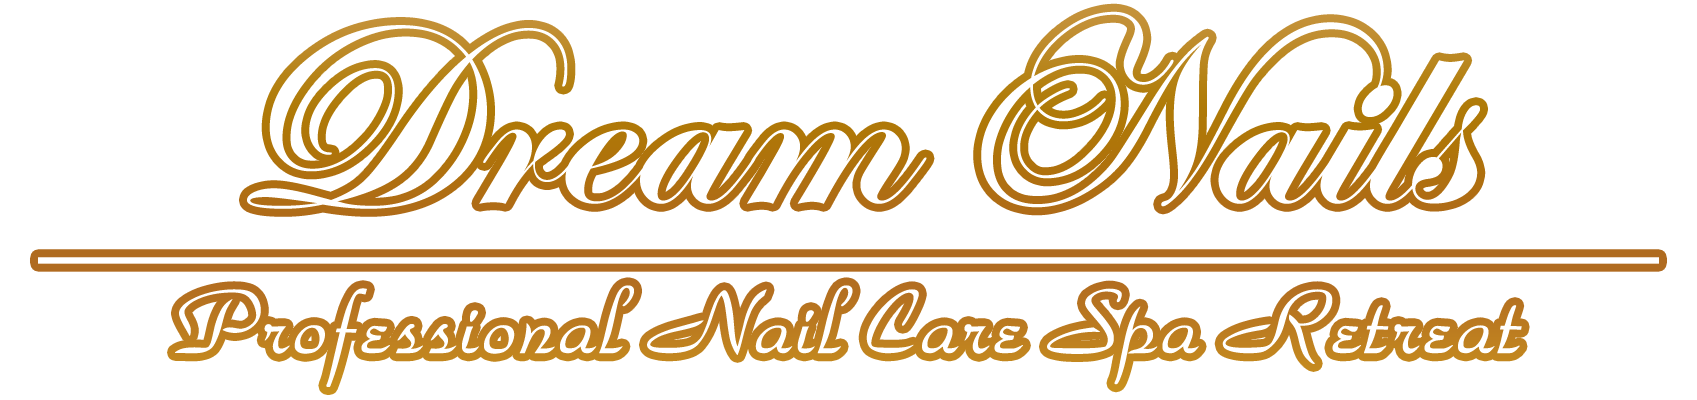 Dream Nails - Nail Salon in North Haven CT 06473